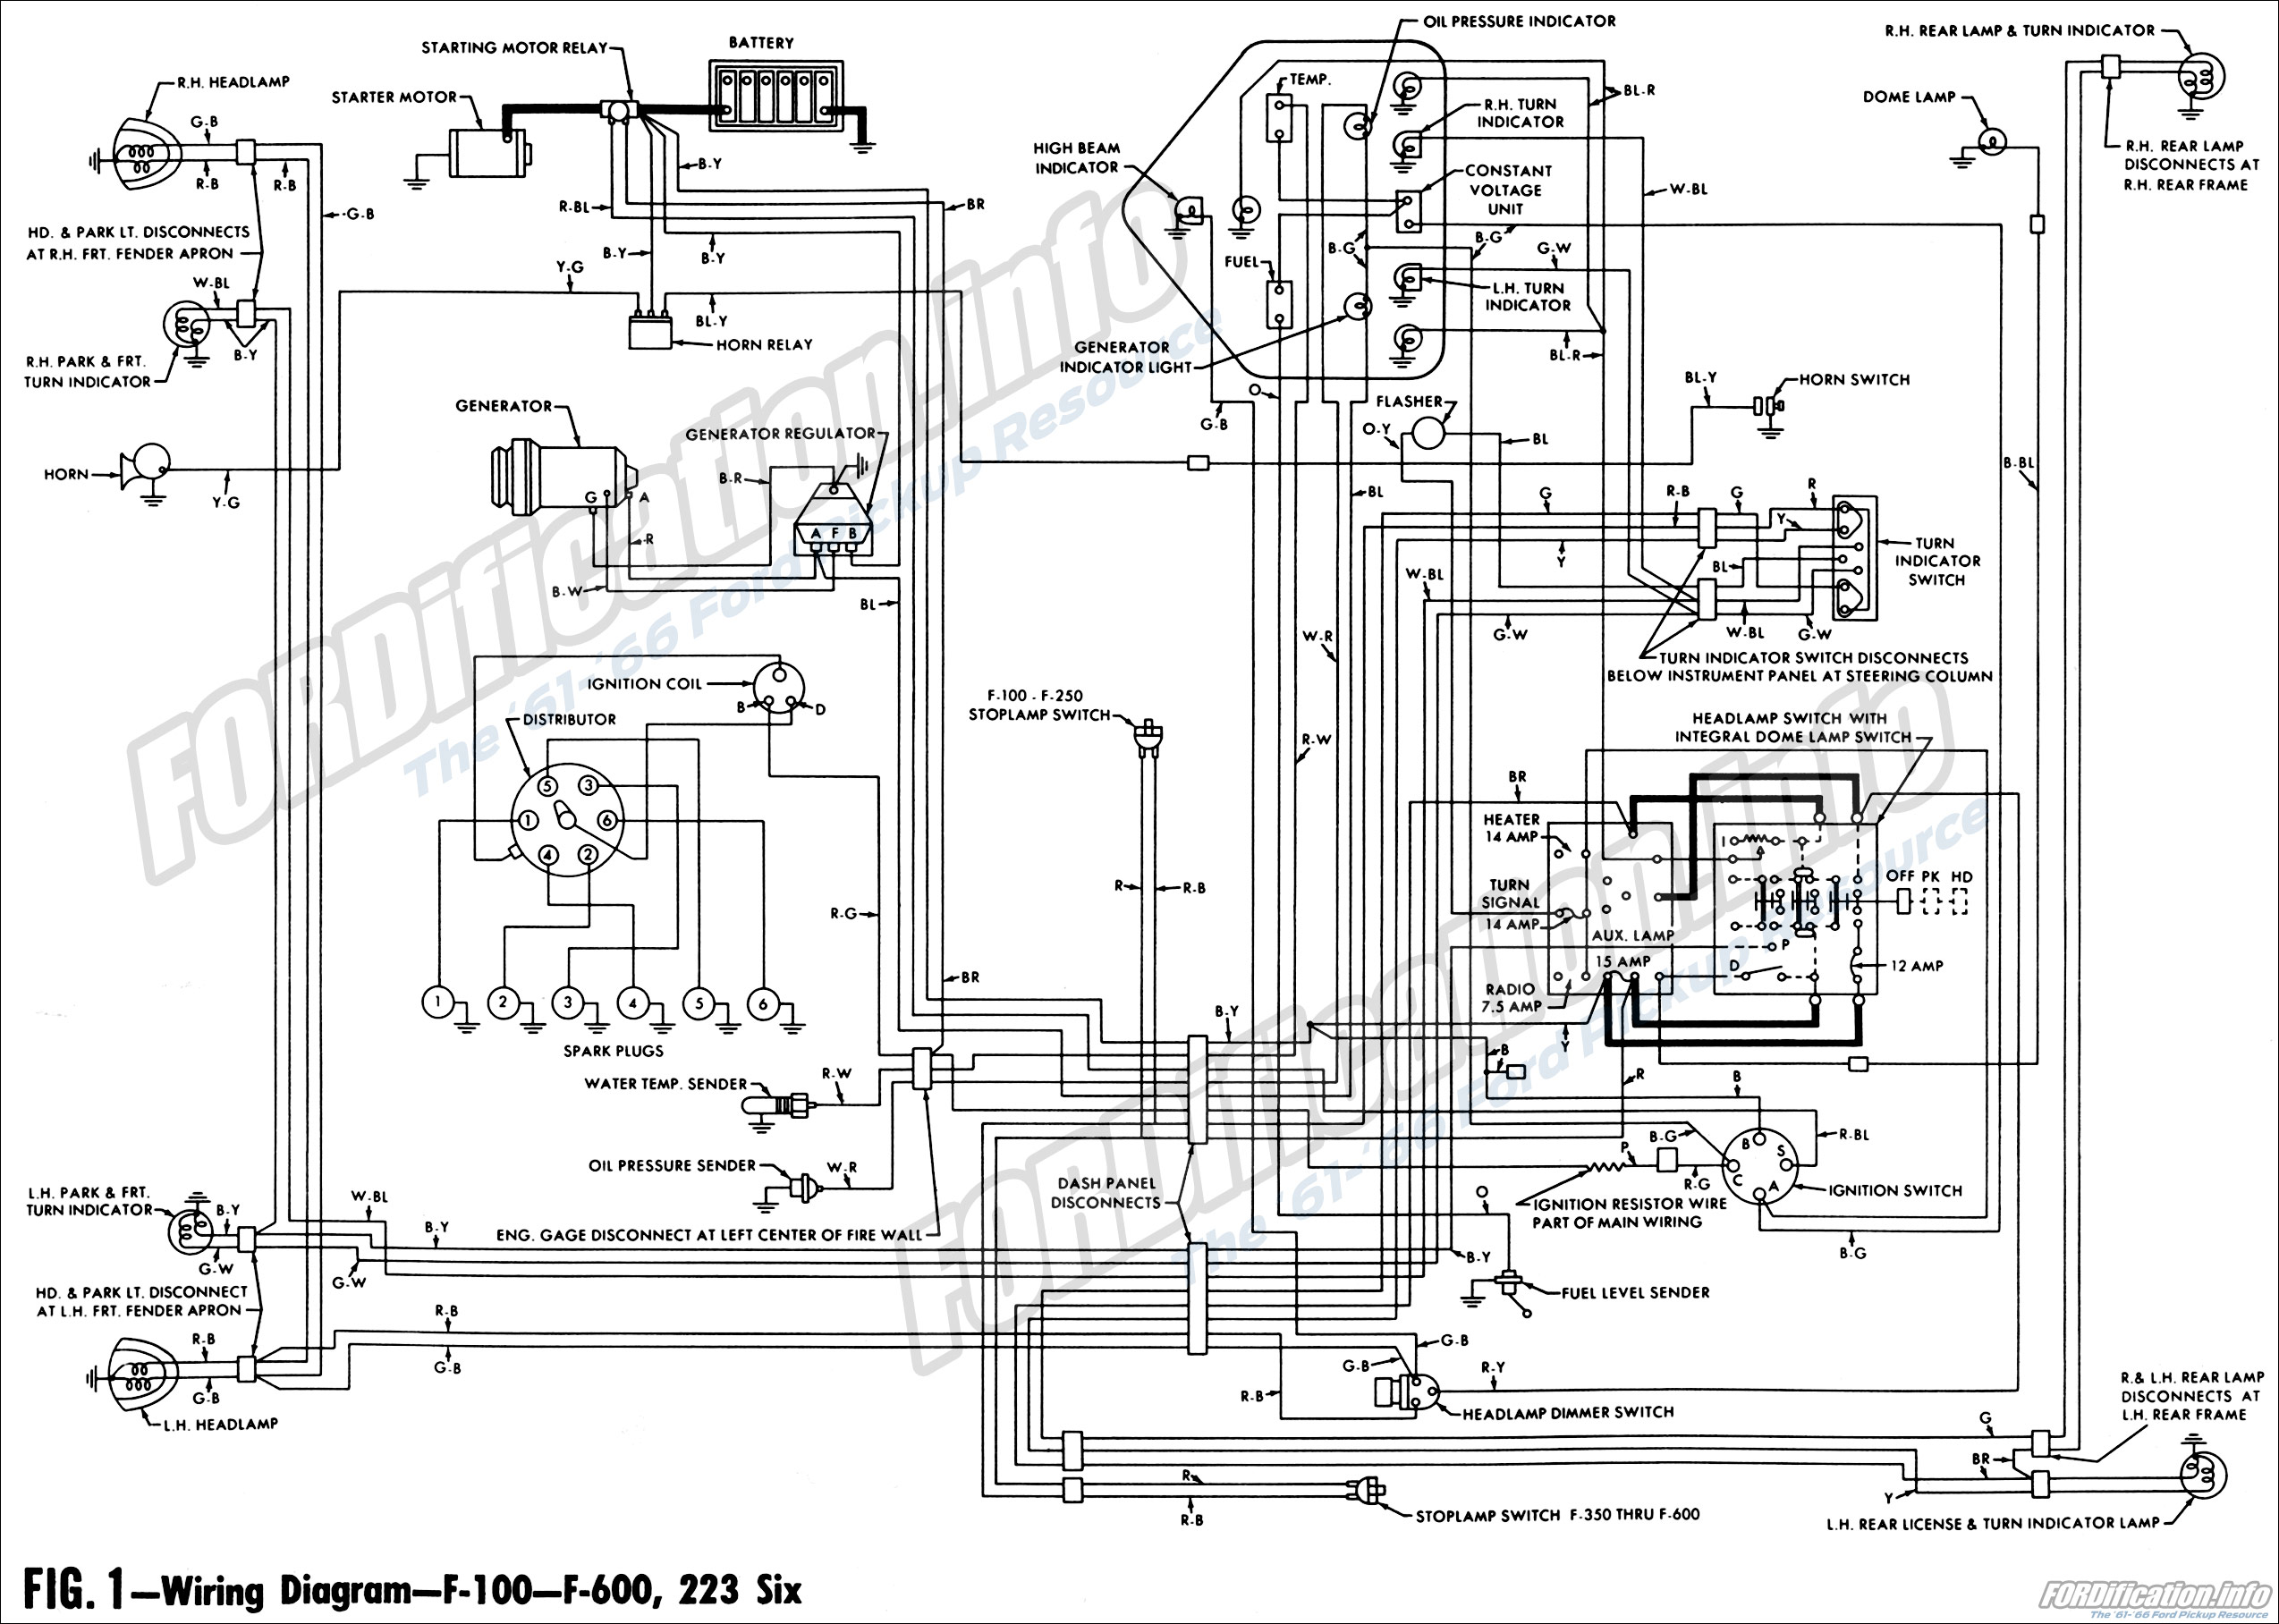 ford f600 starter wiring diagram detailed schematics diagram rh jvpacks com 1990  Ford F800 Dump Truck 1990 Ford F800 Gross Vehichle Weight